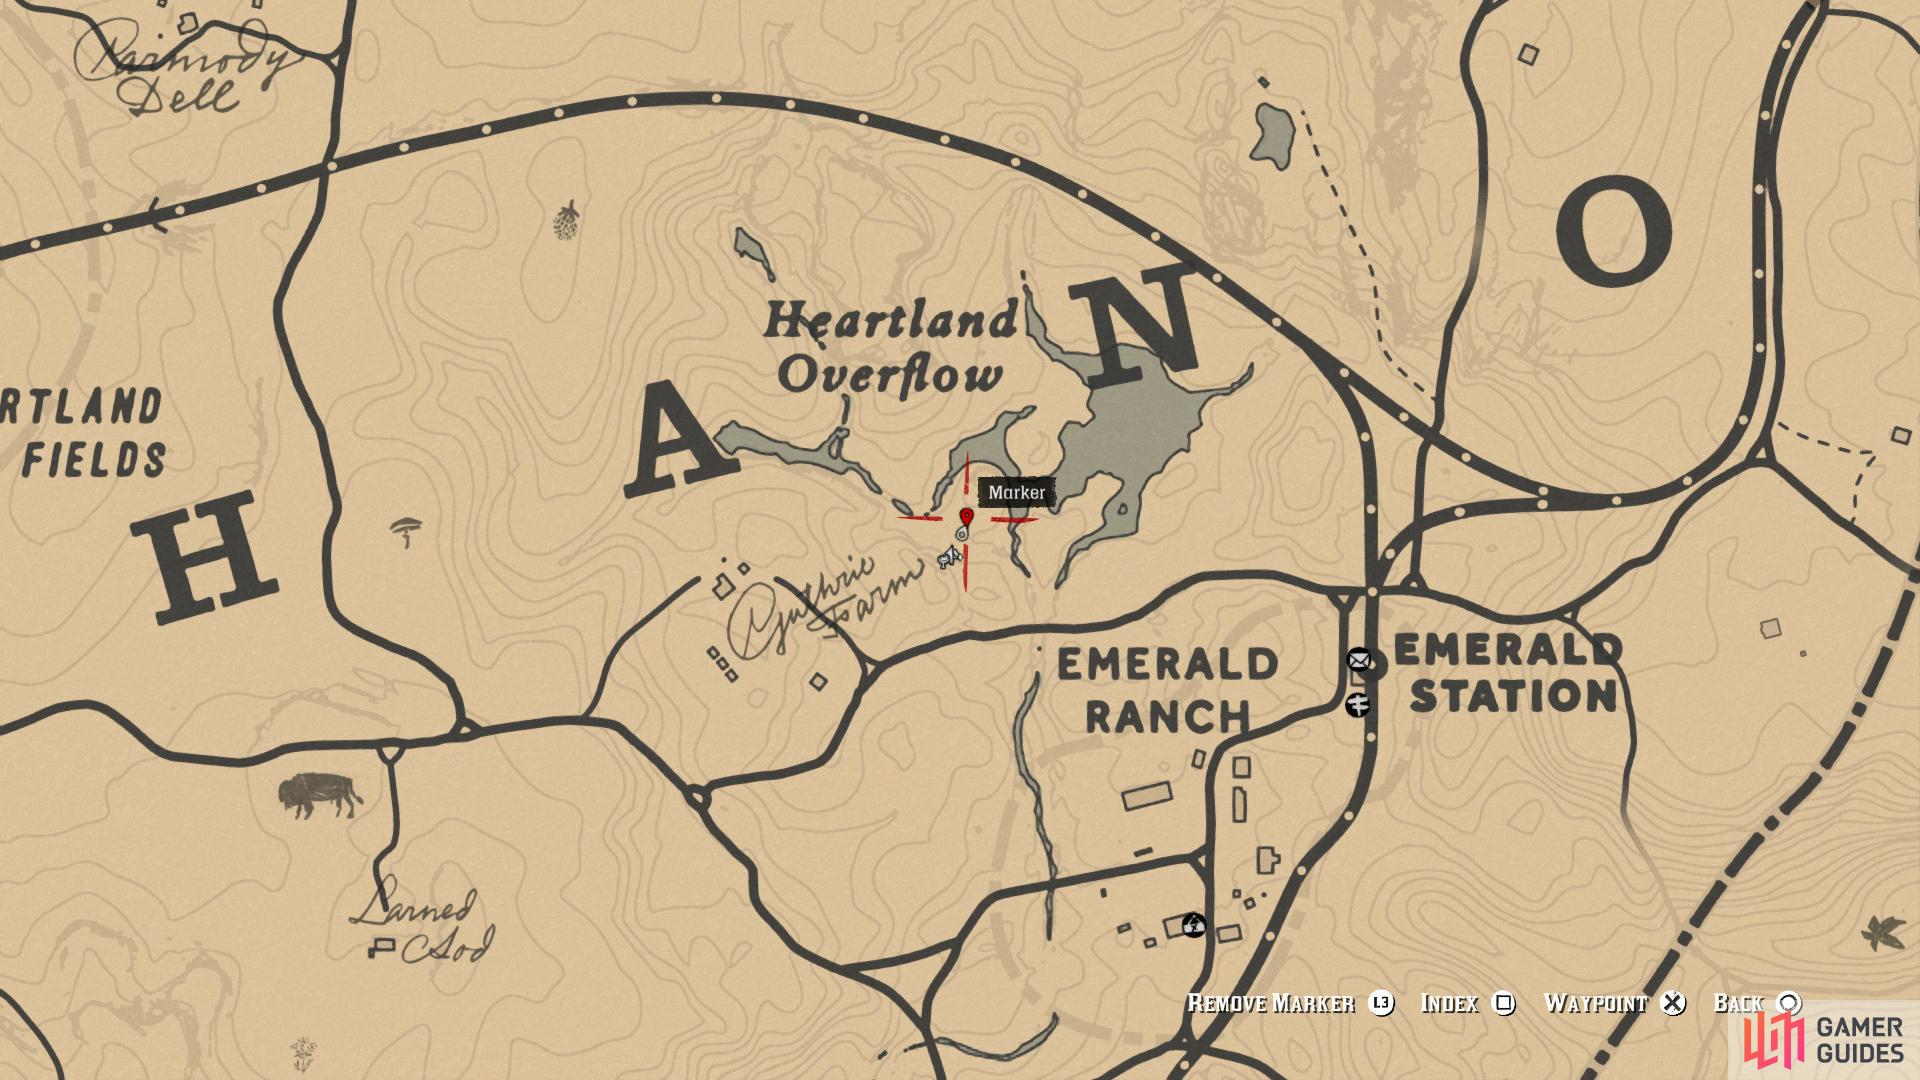 Head to the south of the Heartland Overflow, northwest of Emerald Ranch